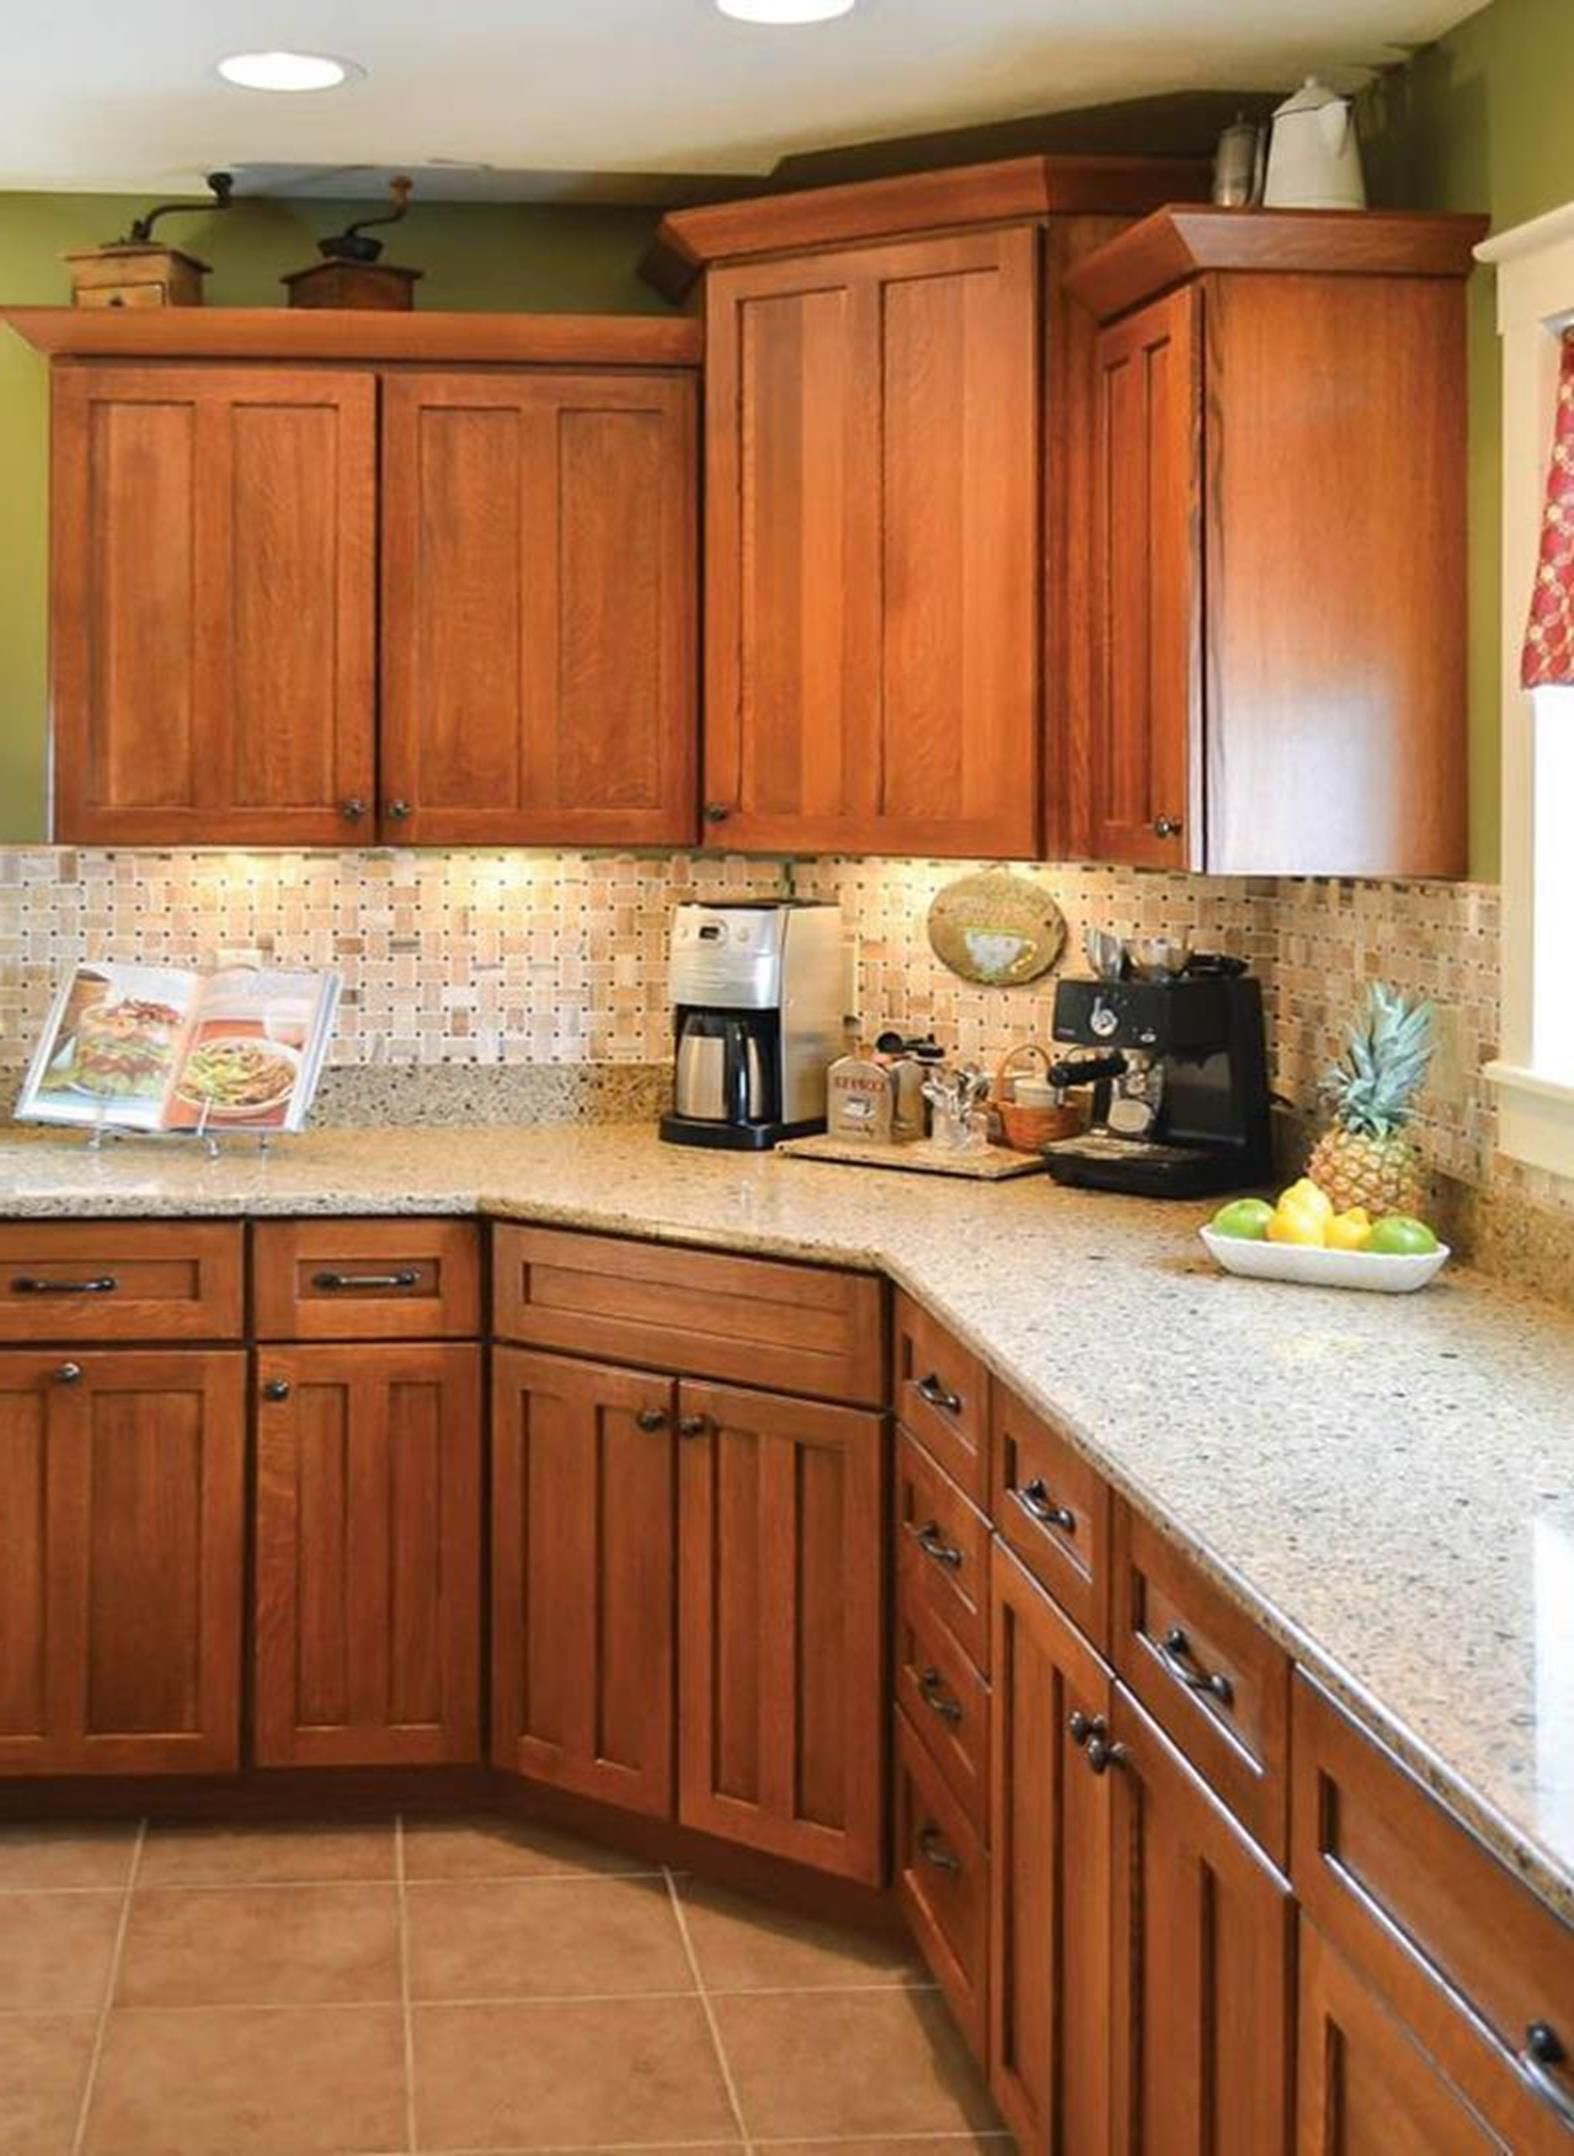 20 perfect kitchen wall colors with oak cabinets for 2019 on good wall colors for kitchens id=15640